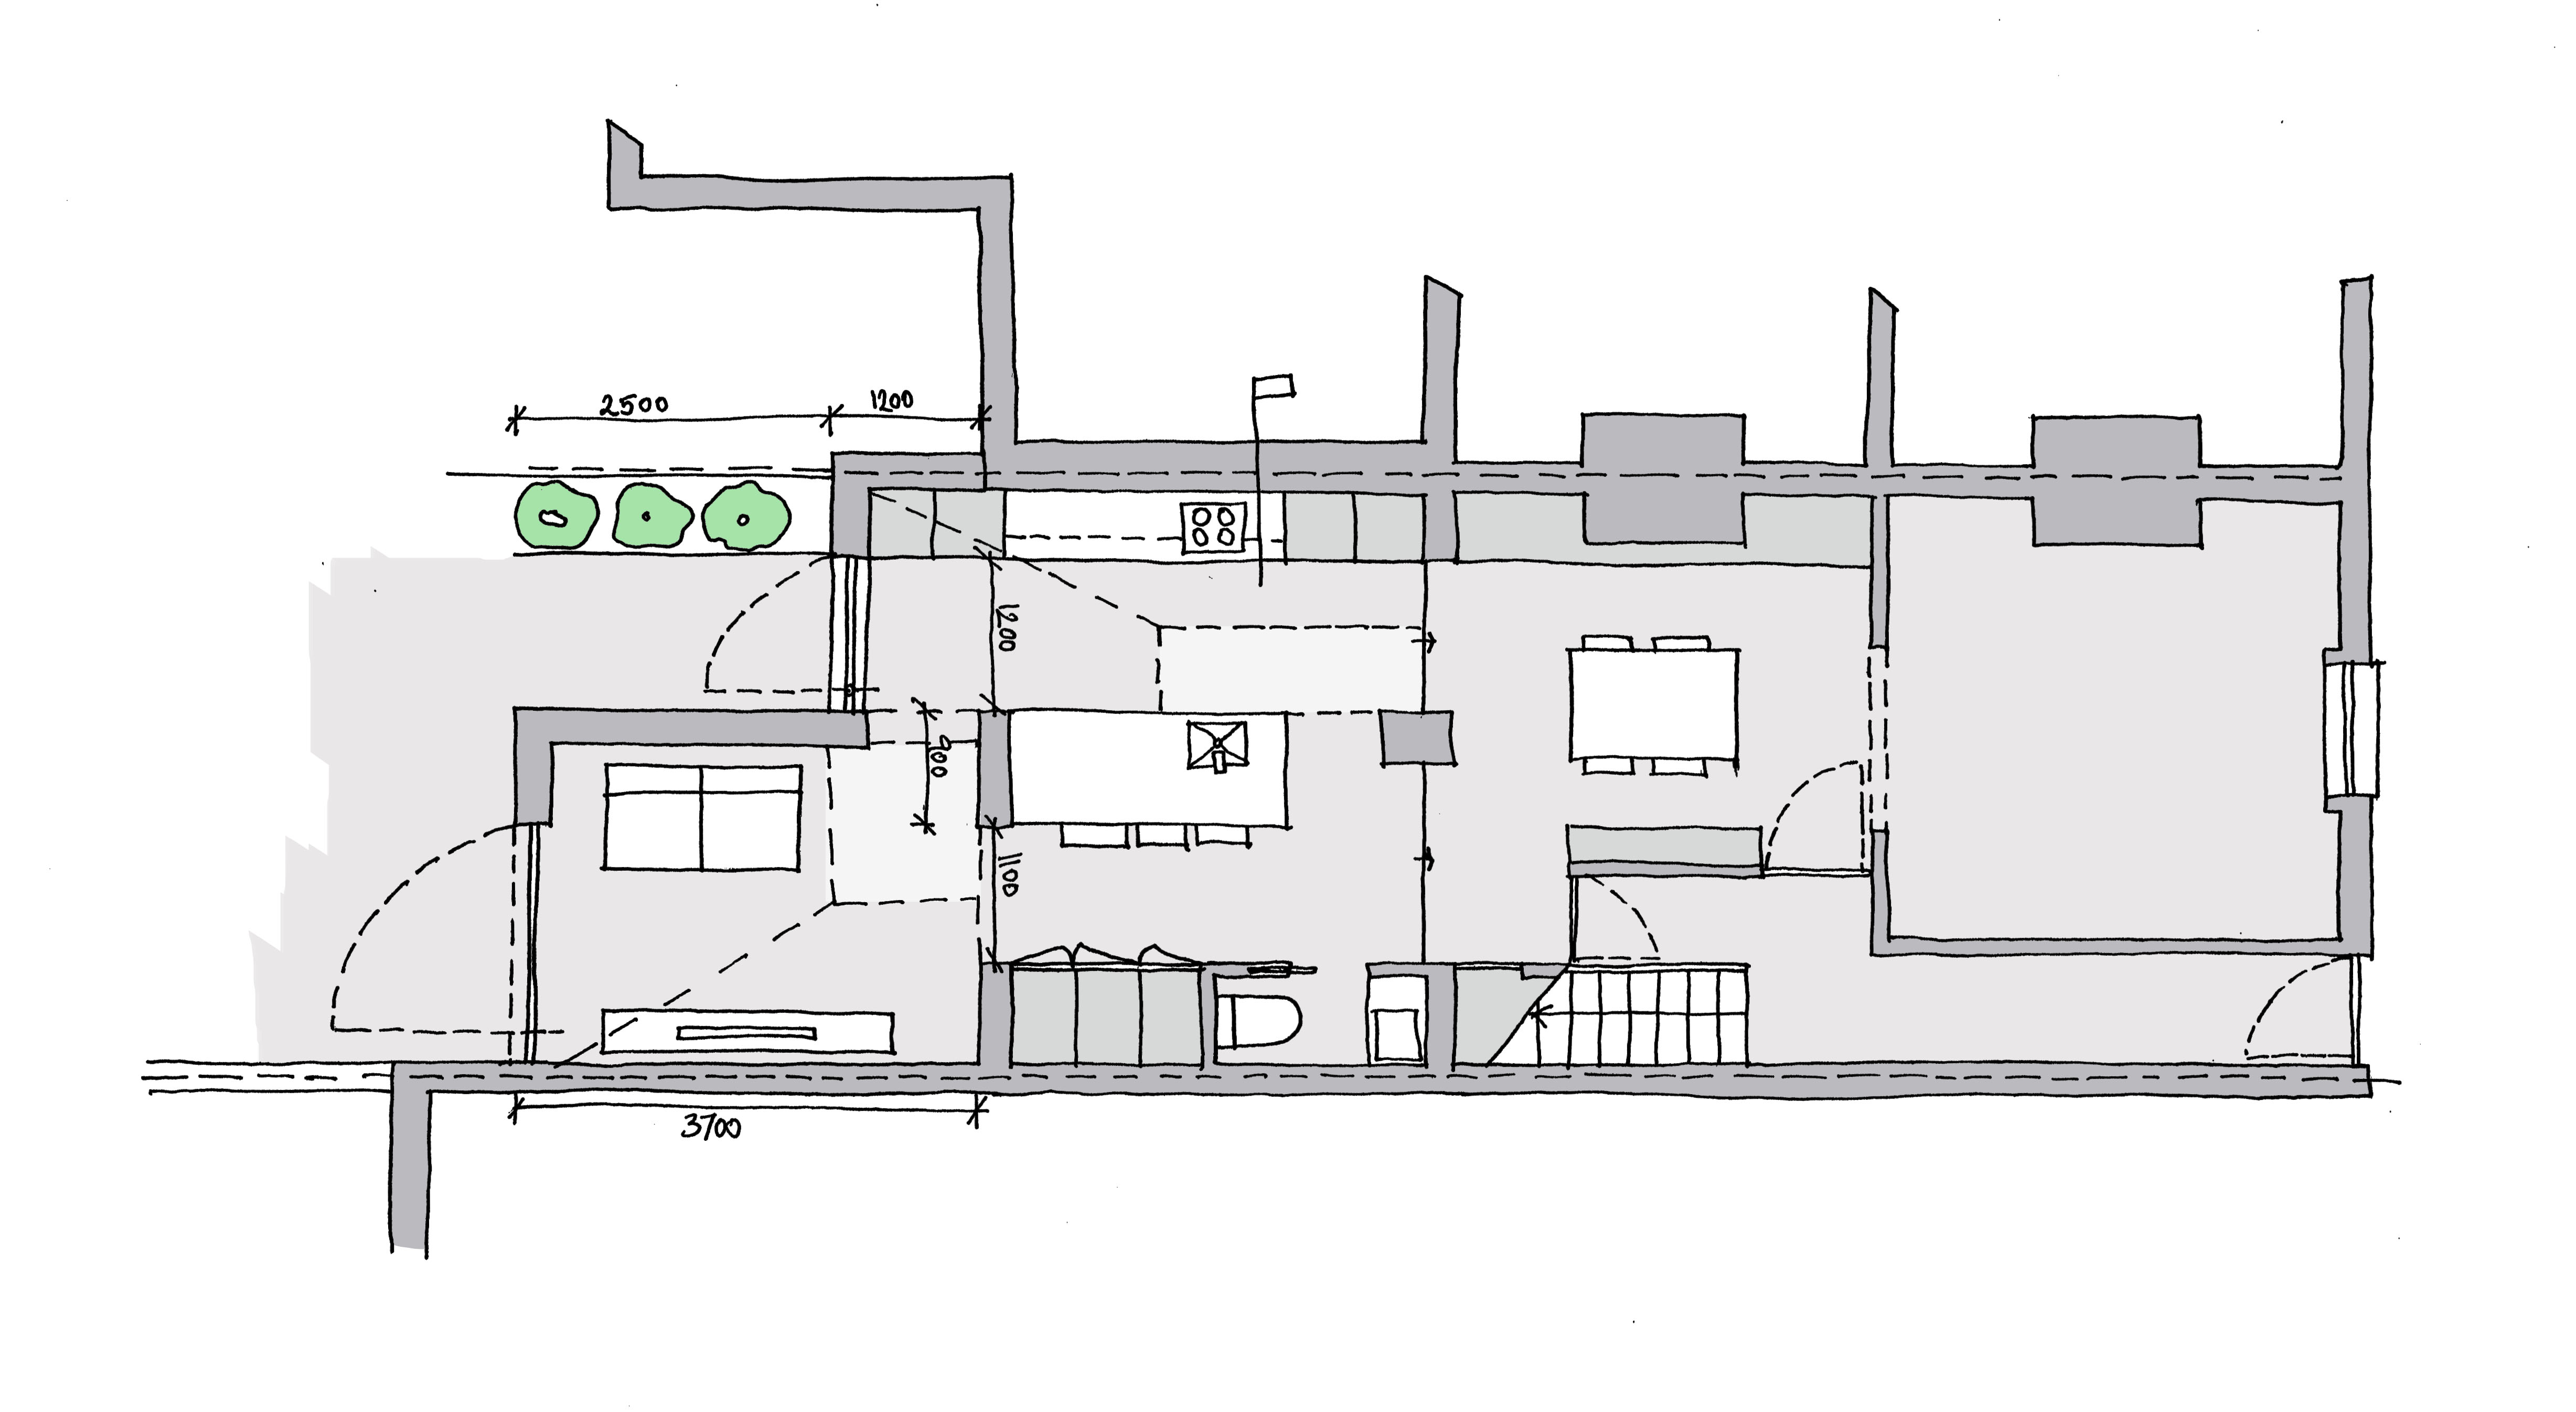 Plan showing the two sloped roof forms creating a stepped rear extension in Stoke Newington.